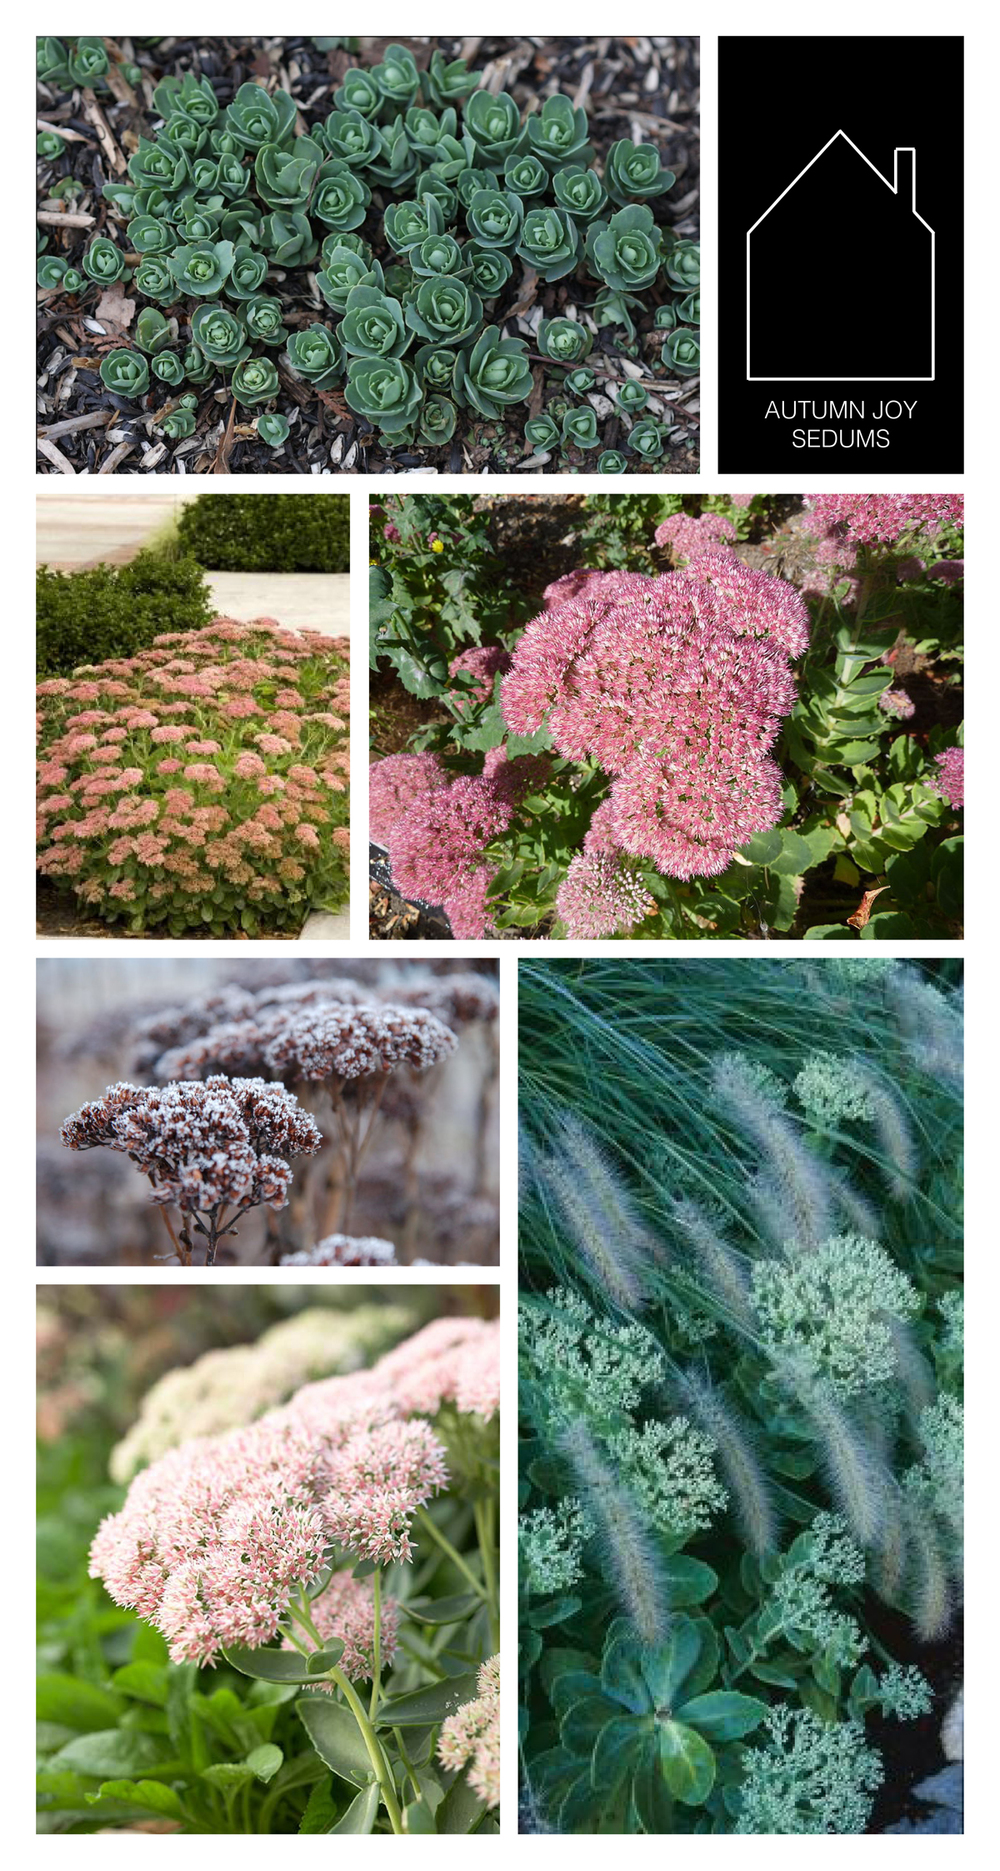 from top left - autumn joy sedums in spring via Stephi Gardens - via Monrovia - via Wikimedia - via Ledge & Garden - via Fine Gardening - via BHG